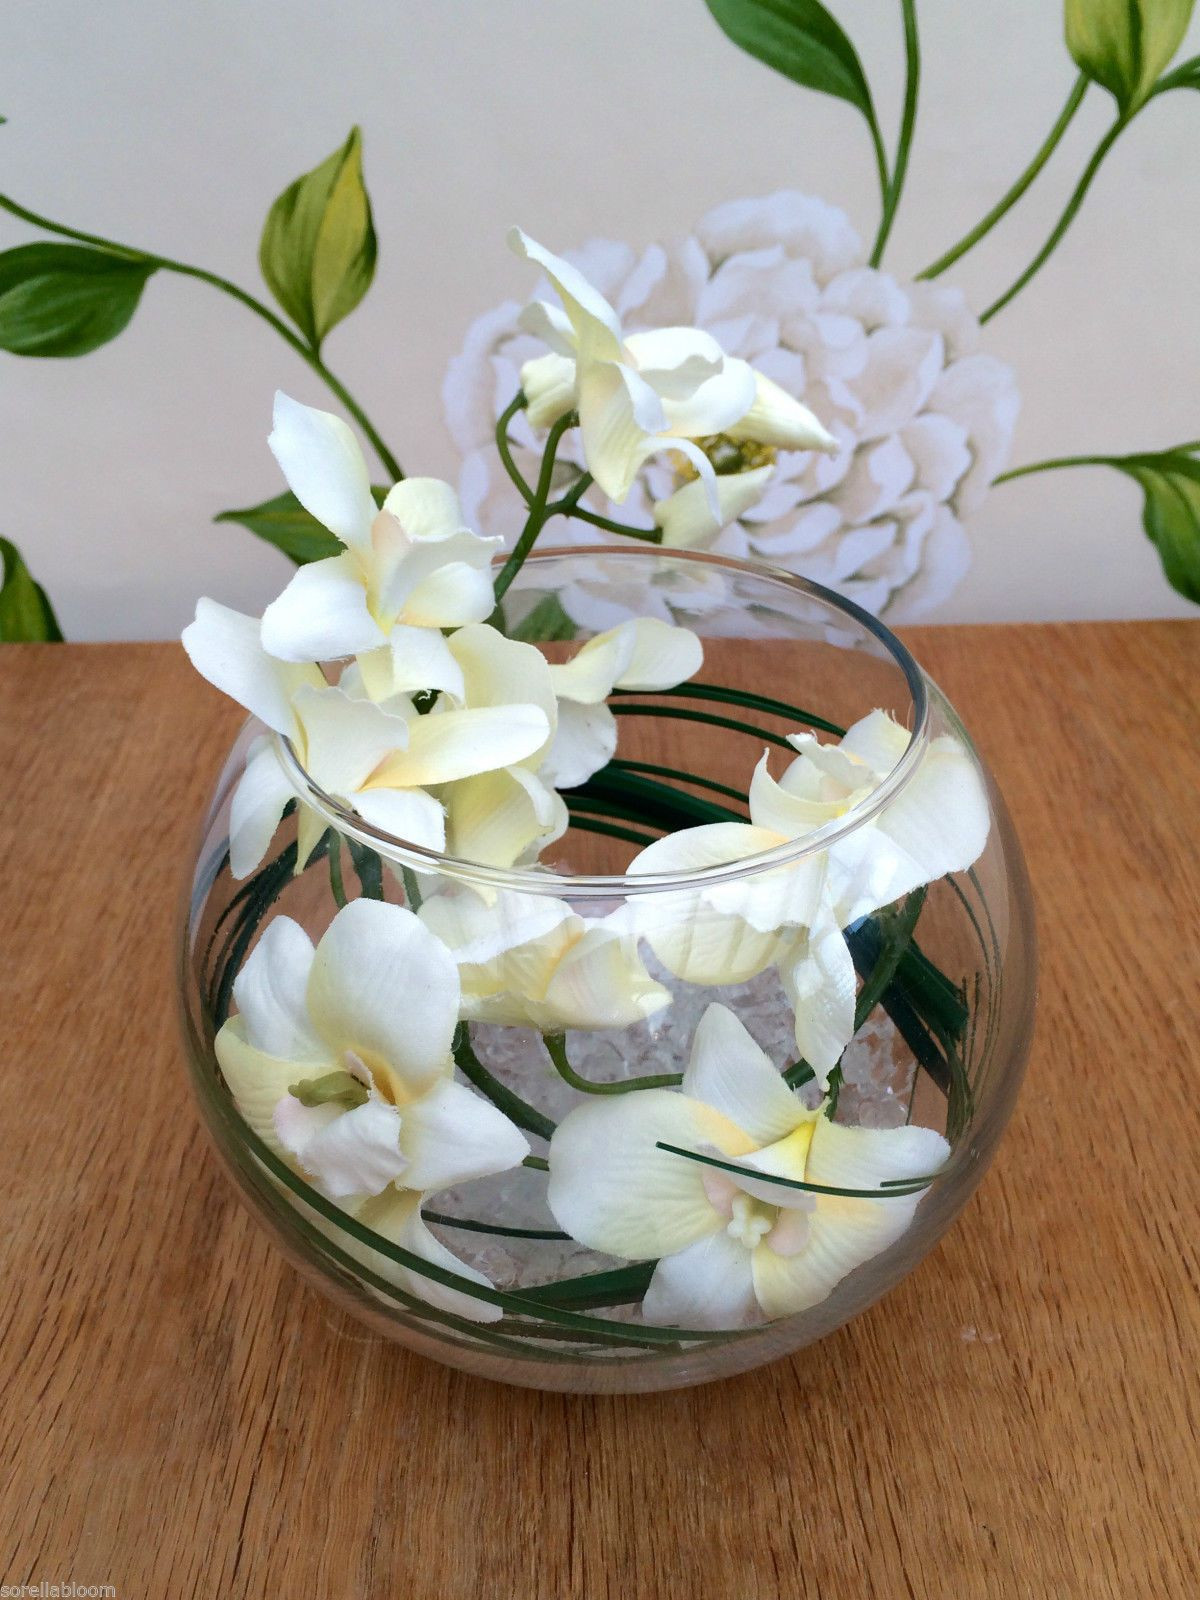 29 Cute orchid Arrangements In Glass Vases